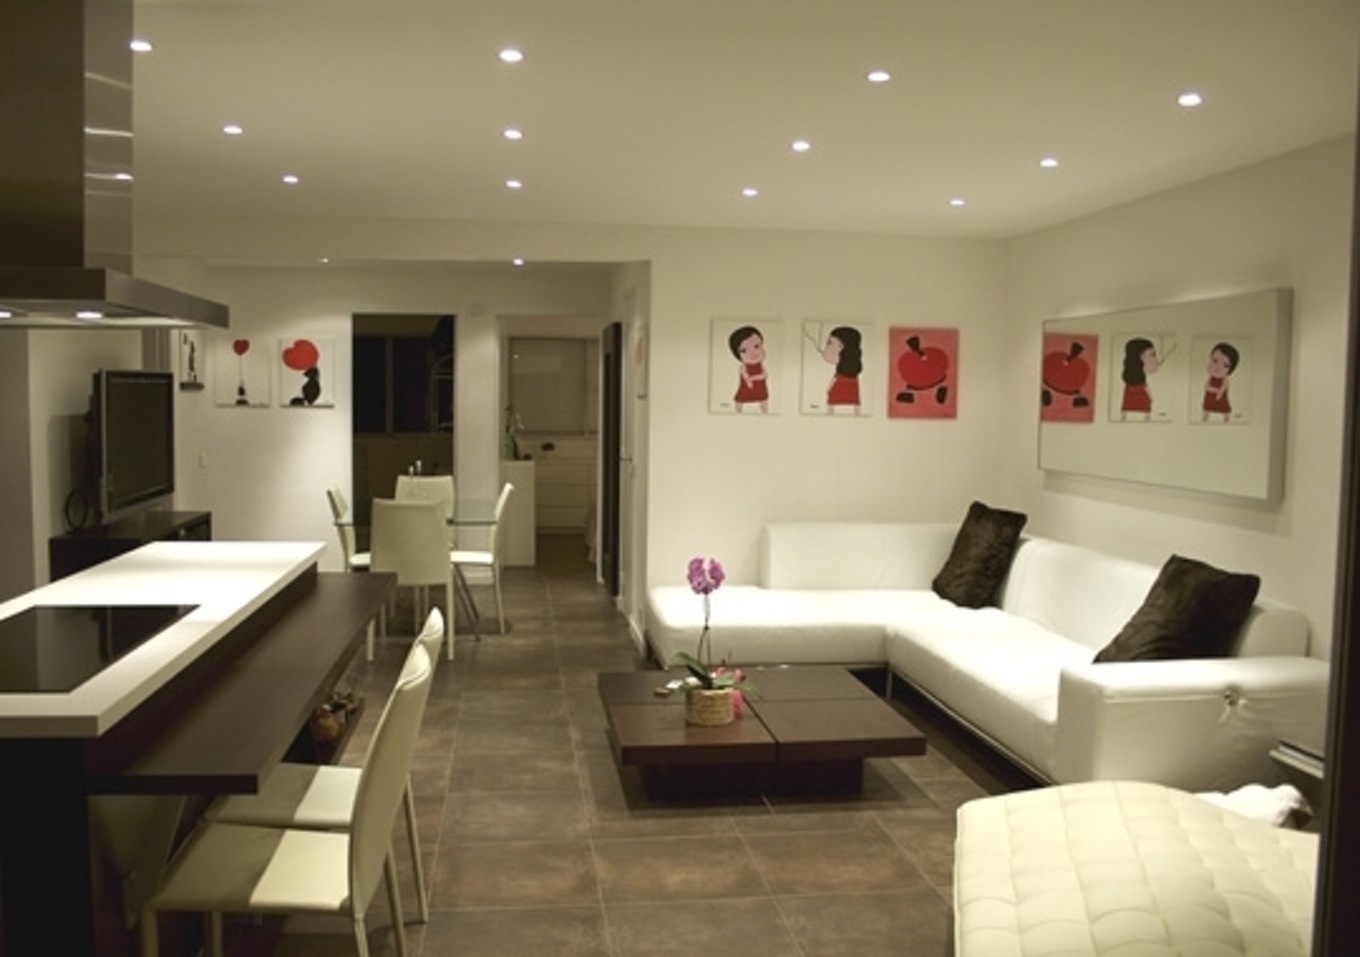 Decoration interieur style americain - boutiqueafro.fr